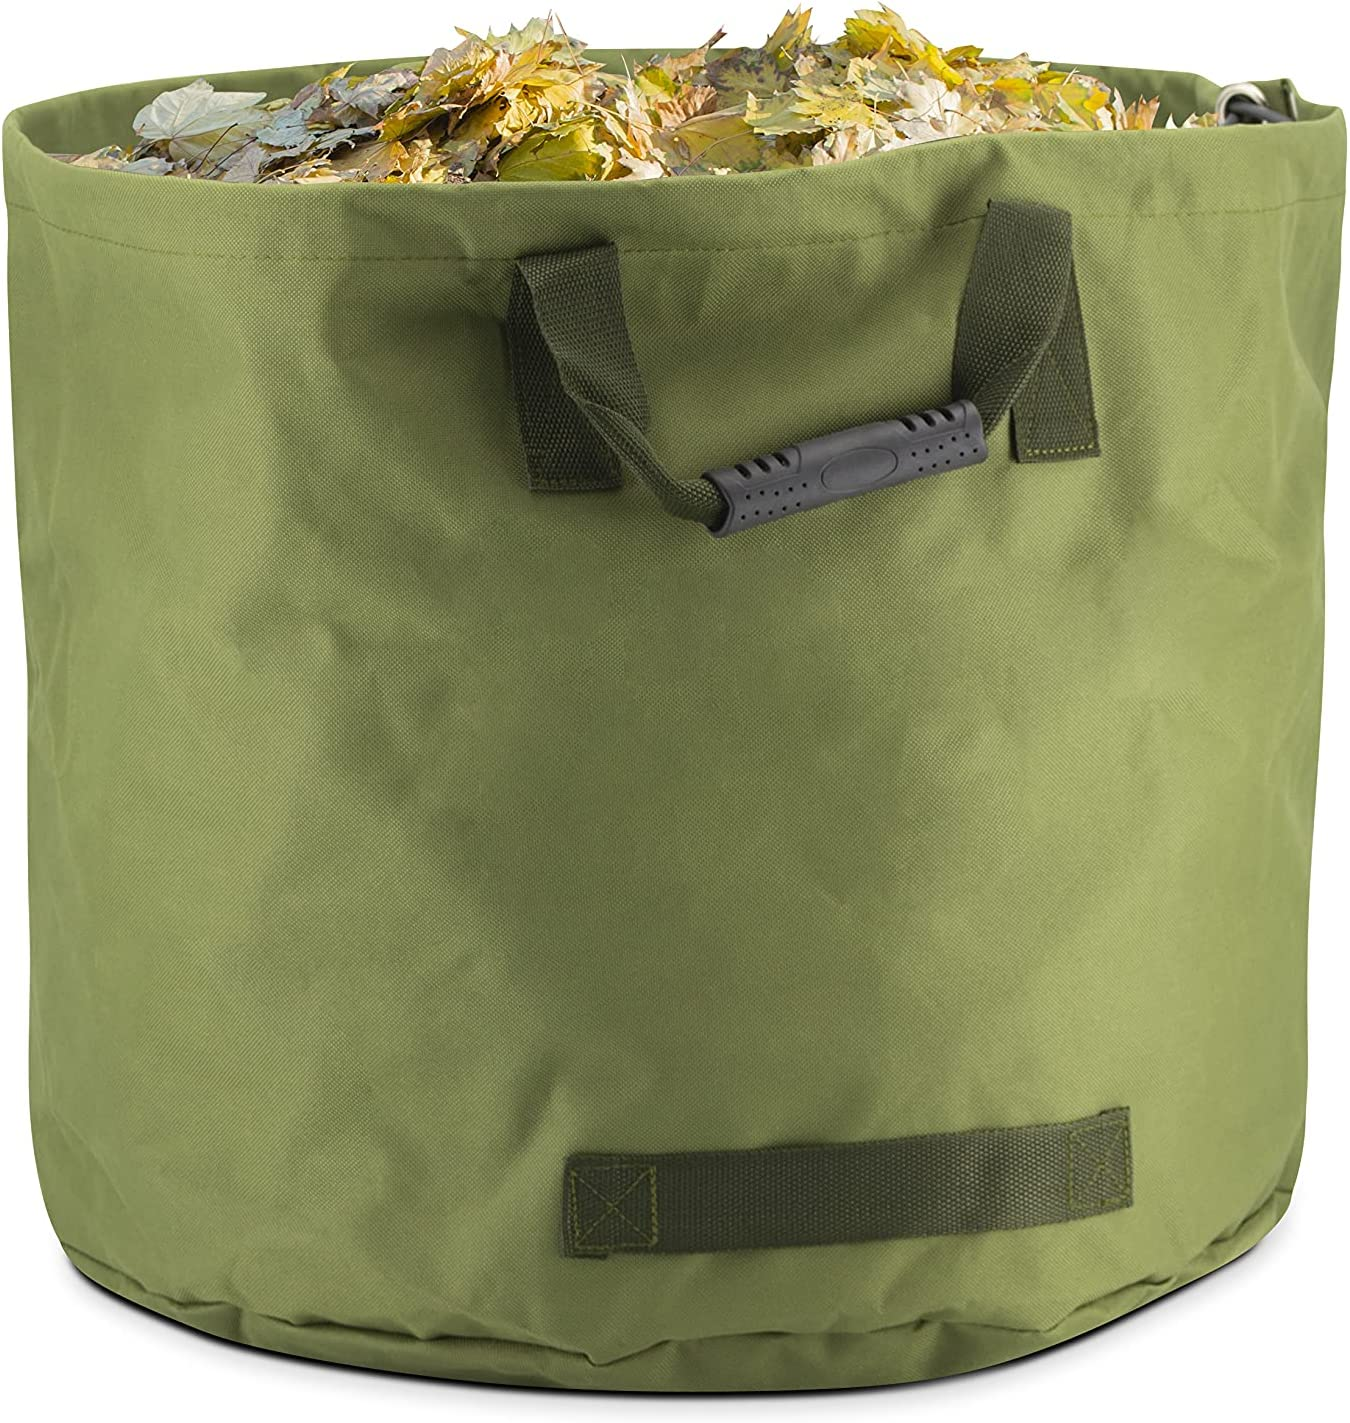 Eternal Living 33 Gallon Collapsible Yard Lawn Garden Bag with Resistant Bottom and Handles, Yard Waste Container Tote Leaf Bin XL, Green